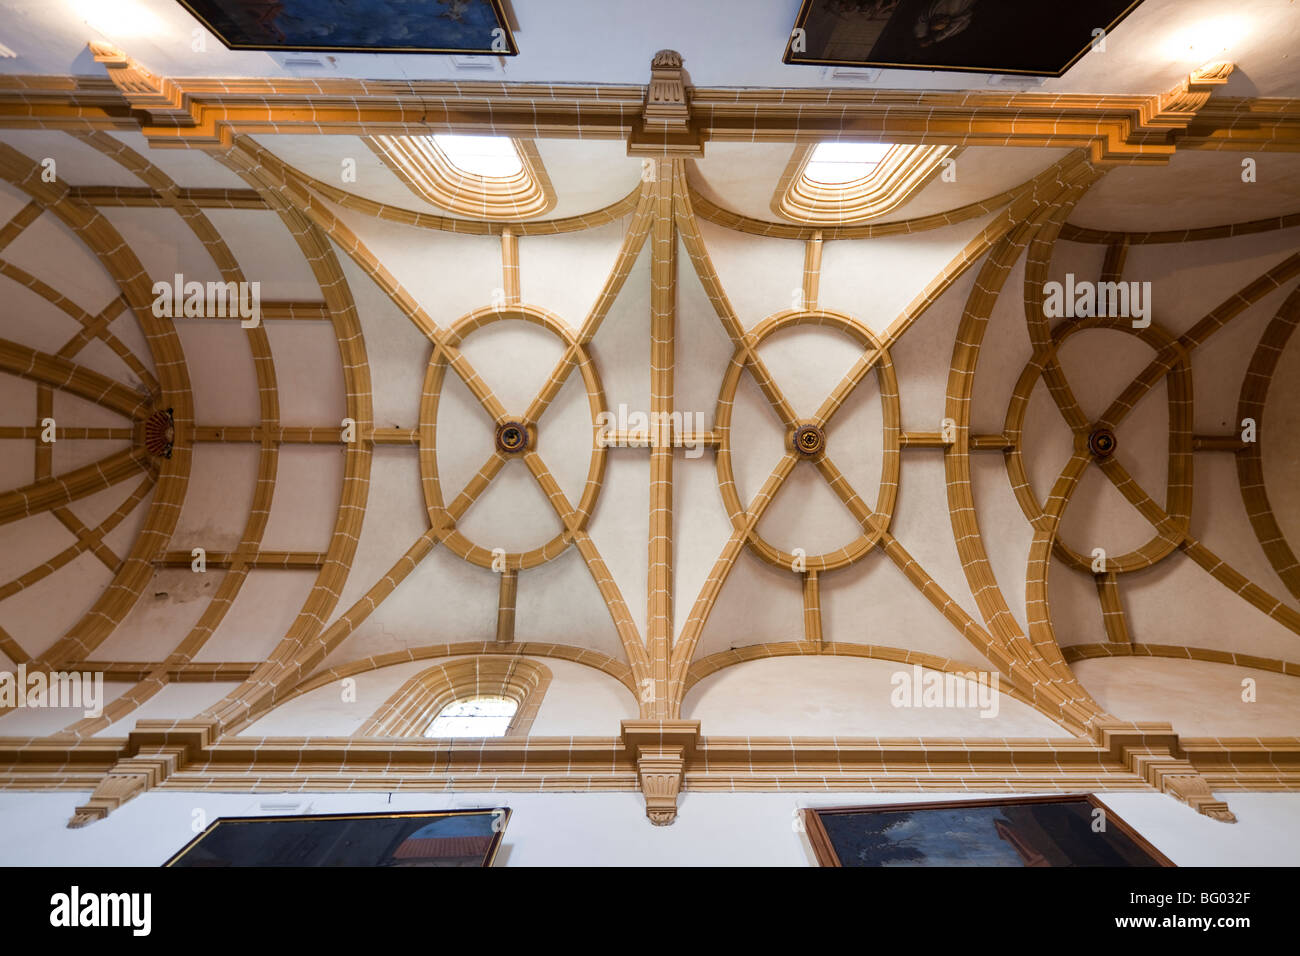 vaulting of Chapter House Cartuja de Granada, Granada Charterhouse, Granada, Andalusia, Spain - Stock Image